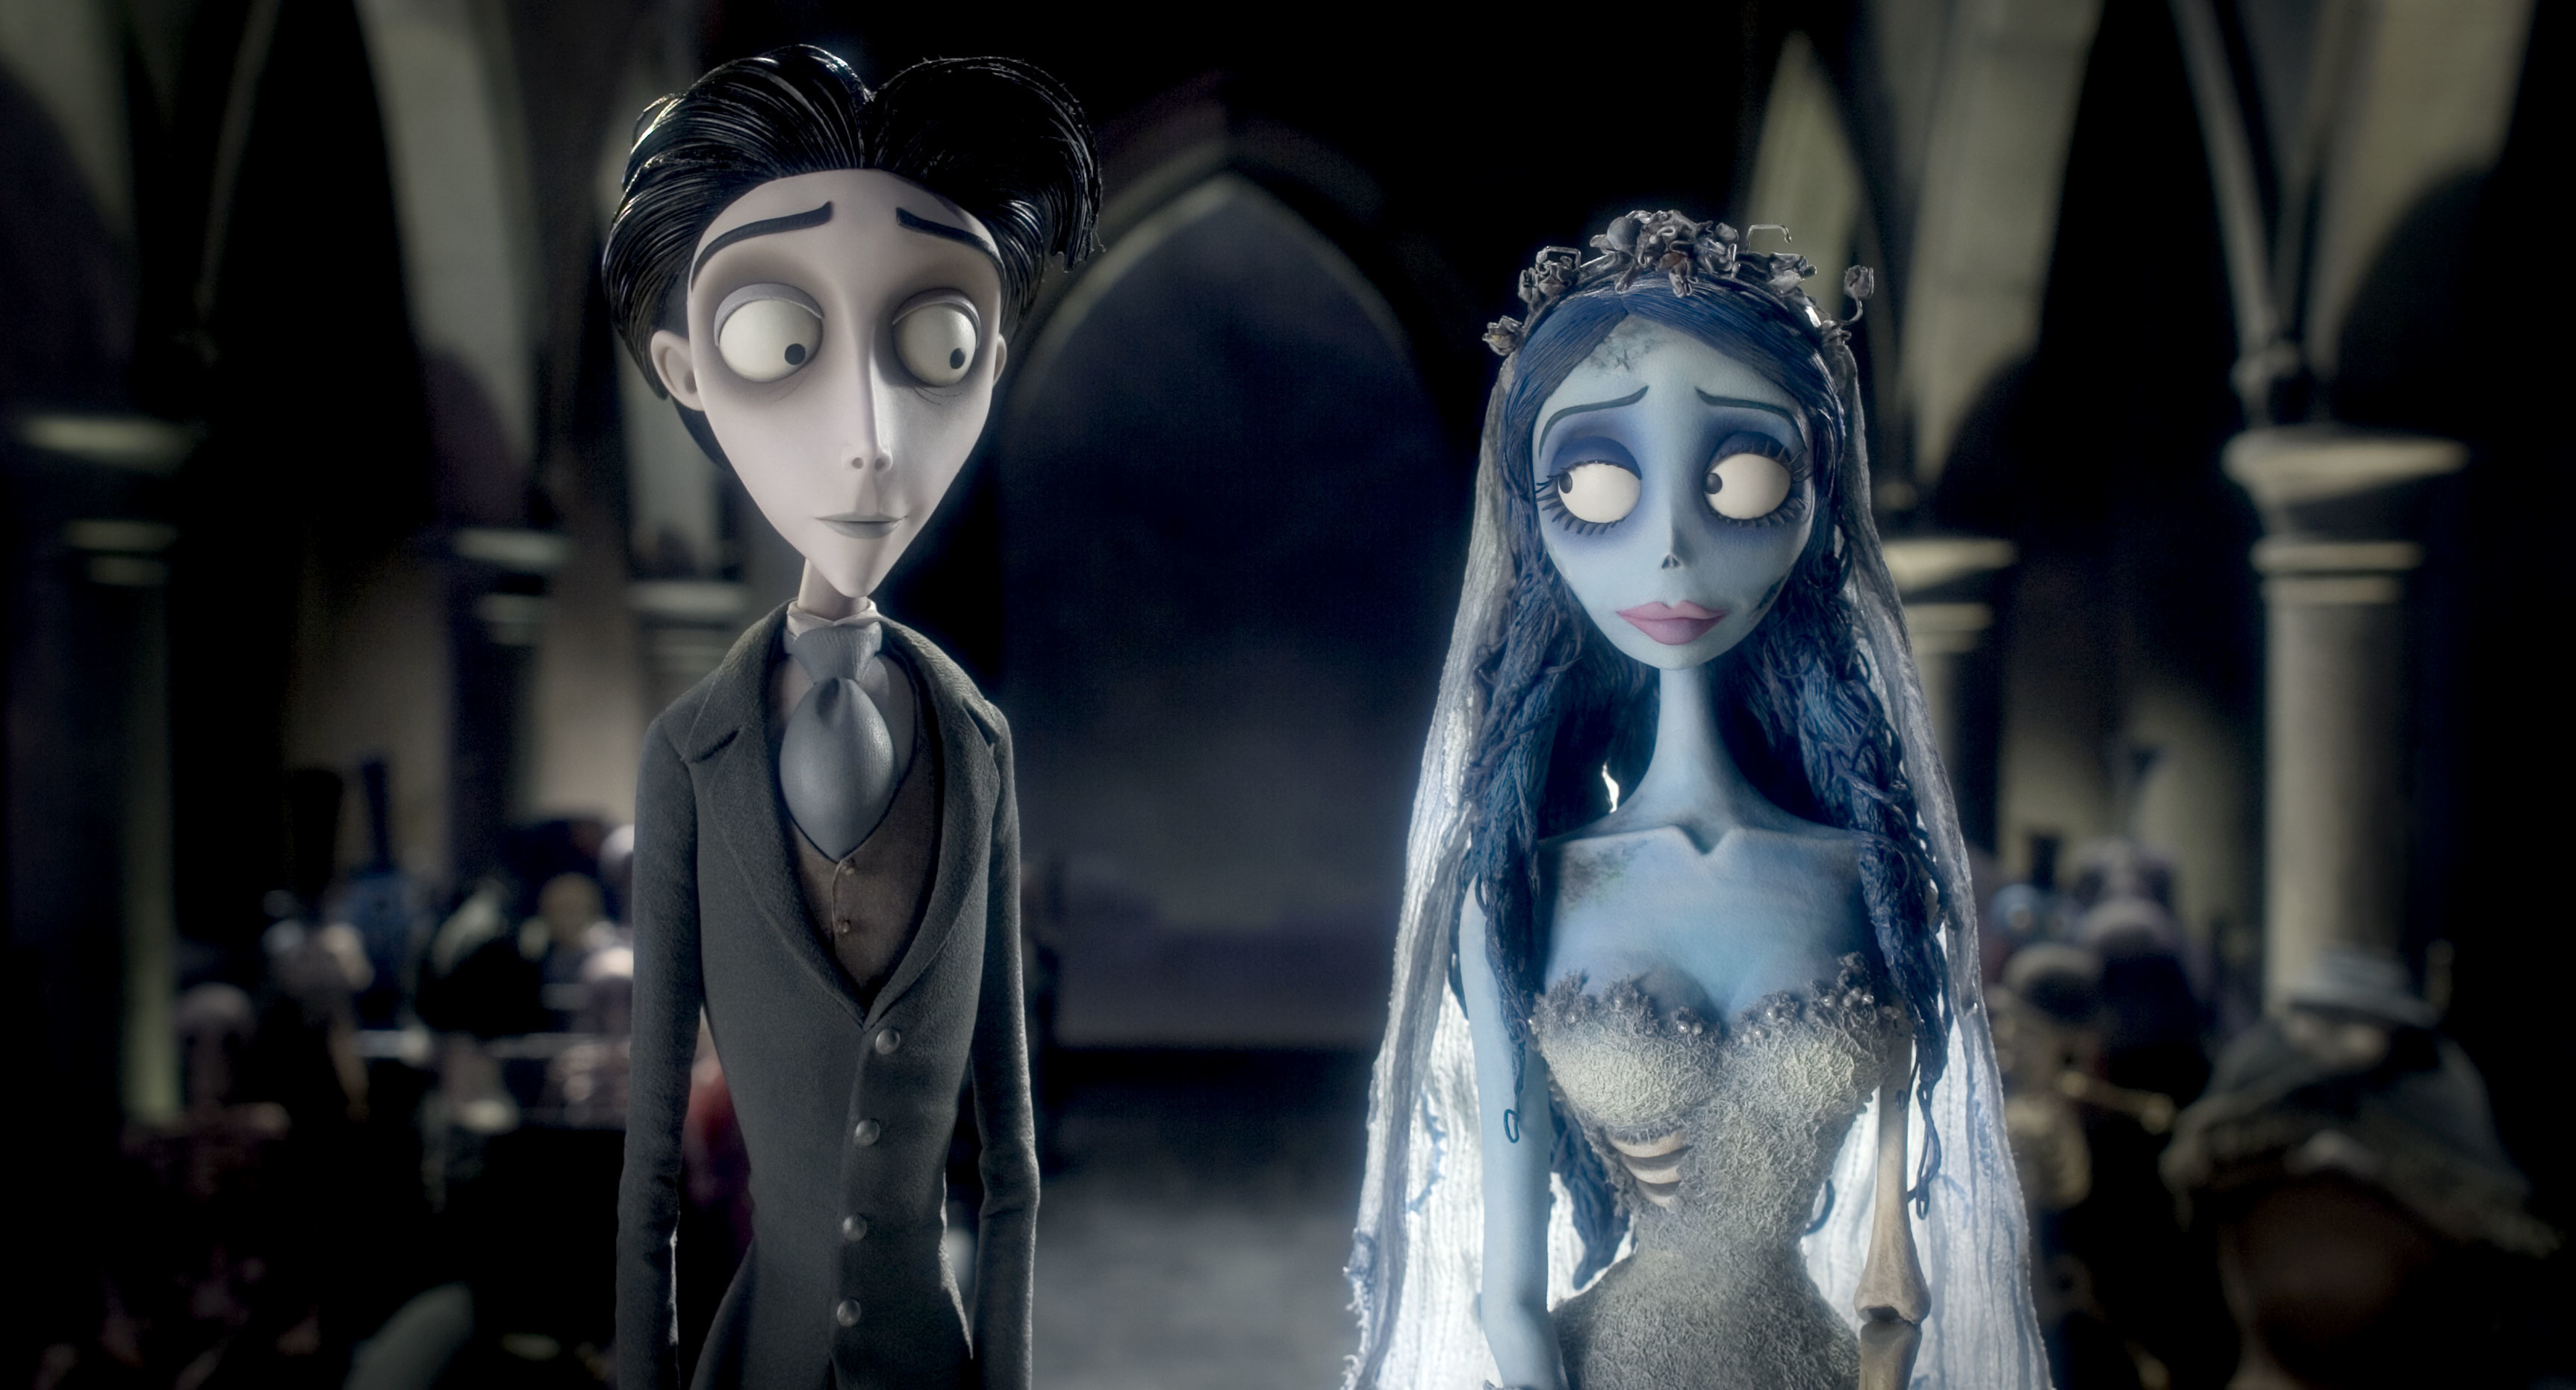 Corpse Bride. 2005. USA/Great Britain. Directed by Tim Burton, Mike Johnson